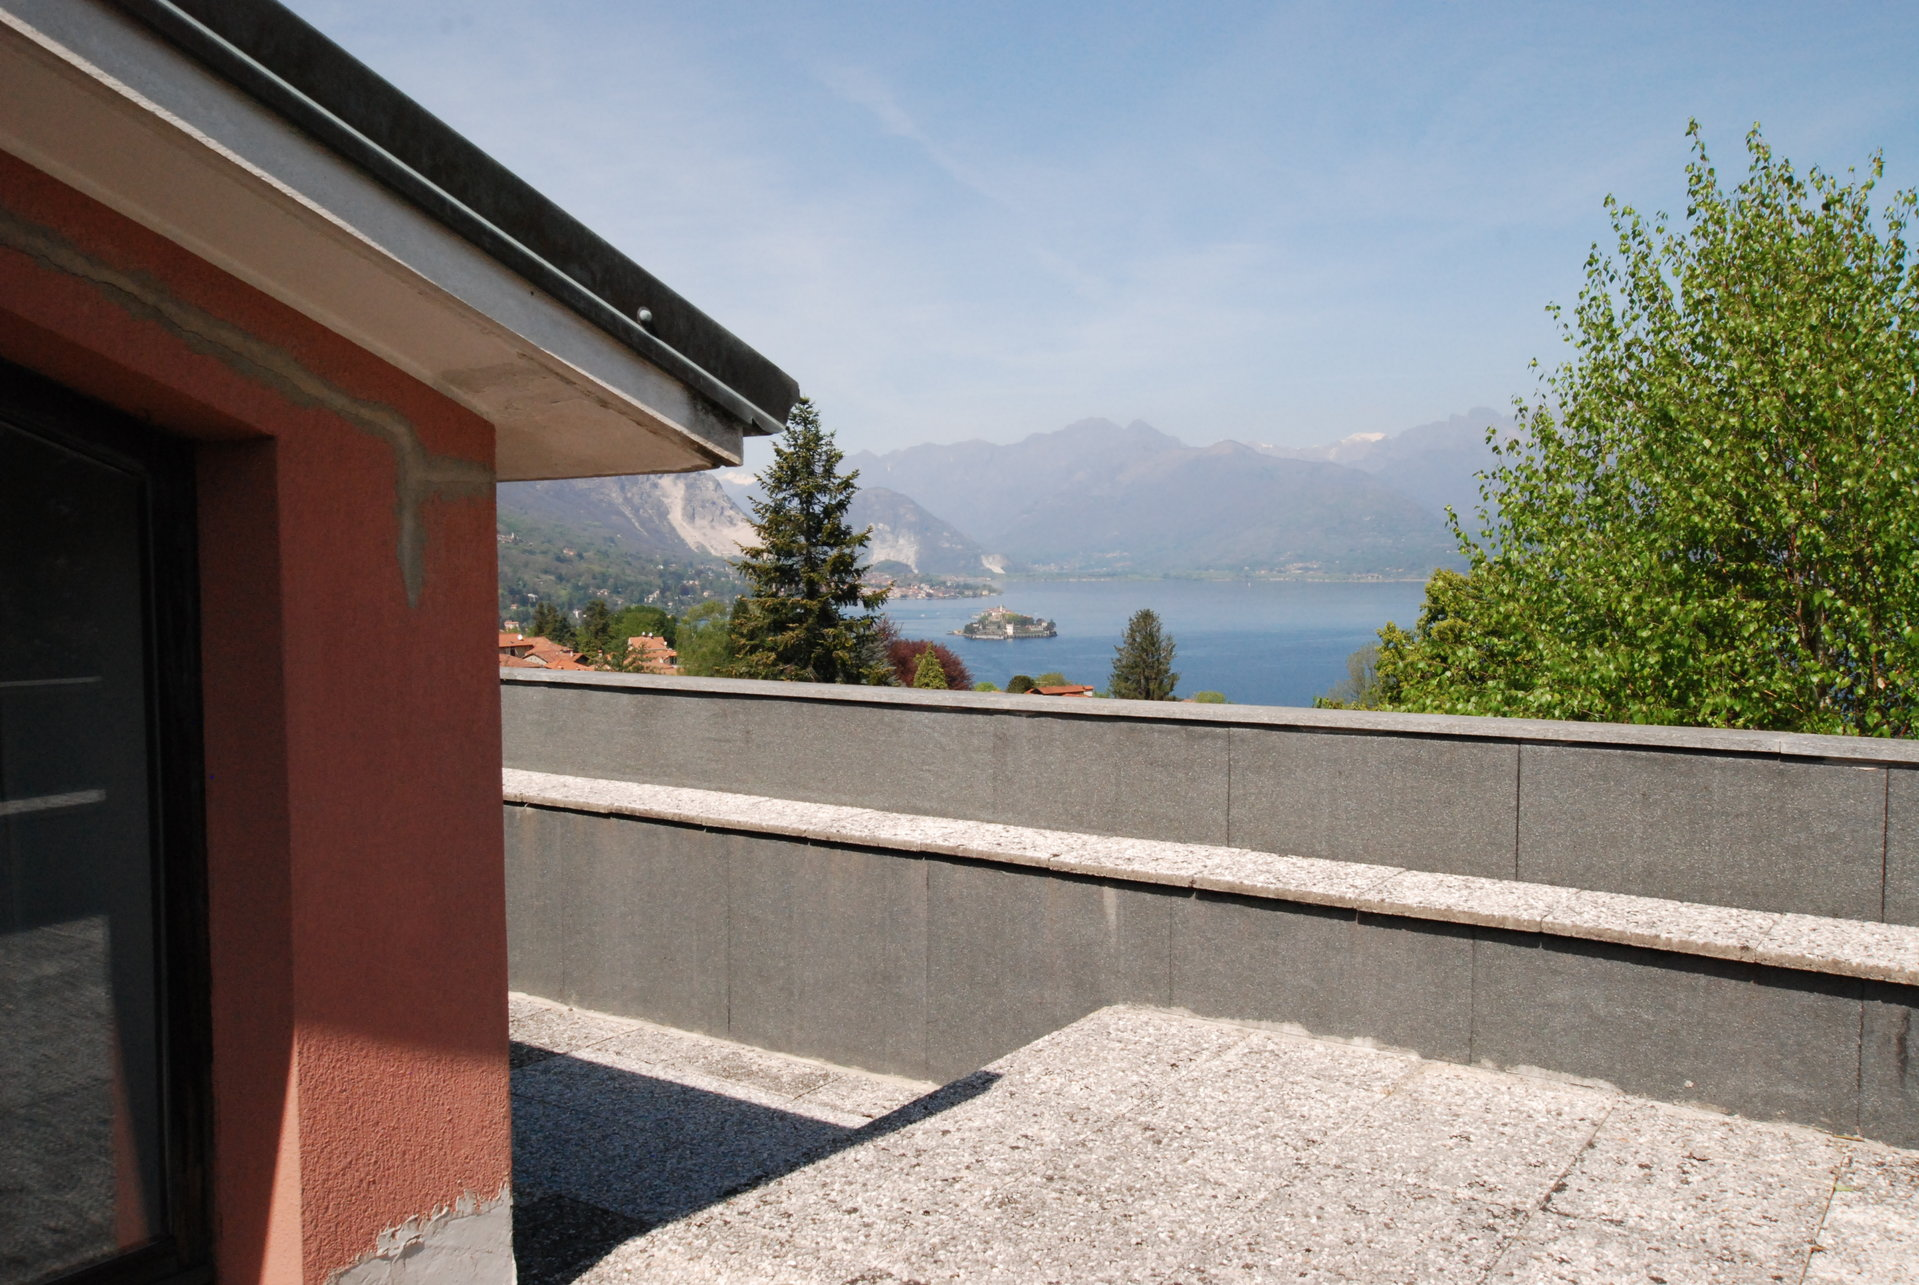 Lake view 80s villa in Stresa - terrace